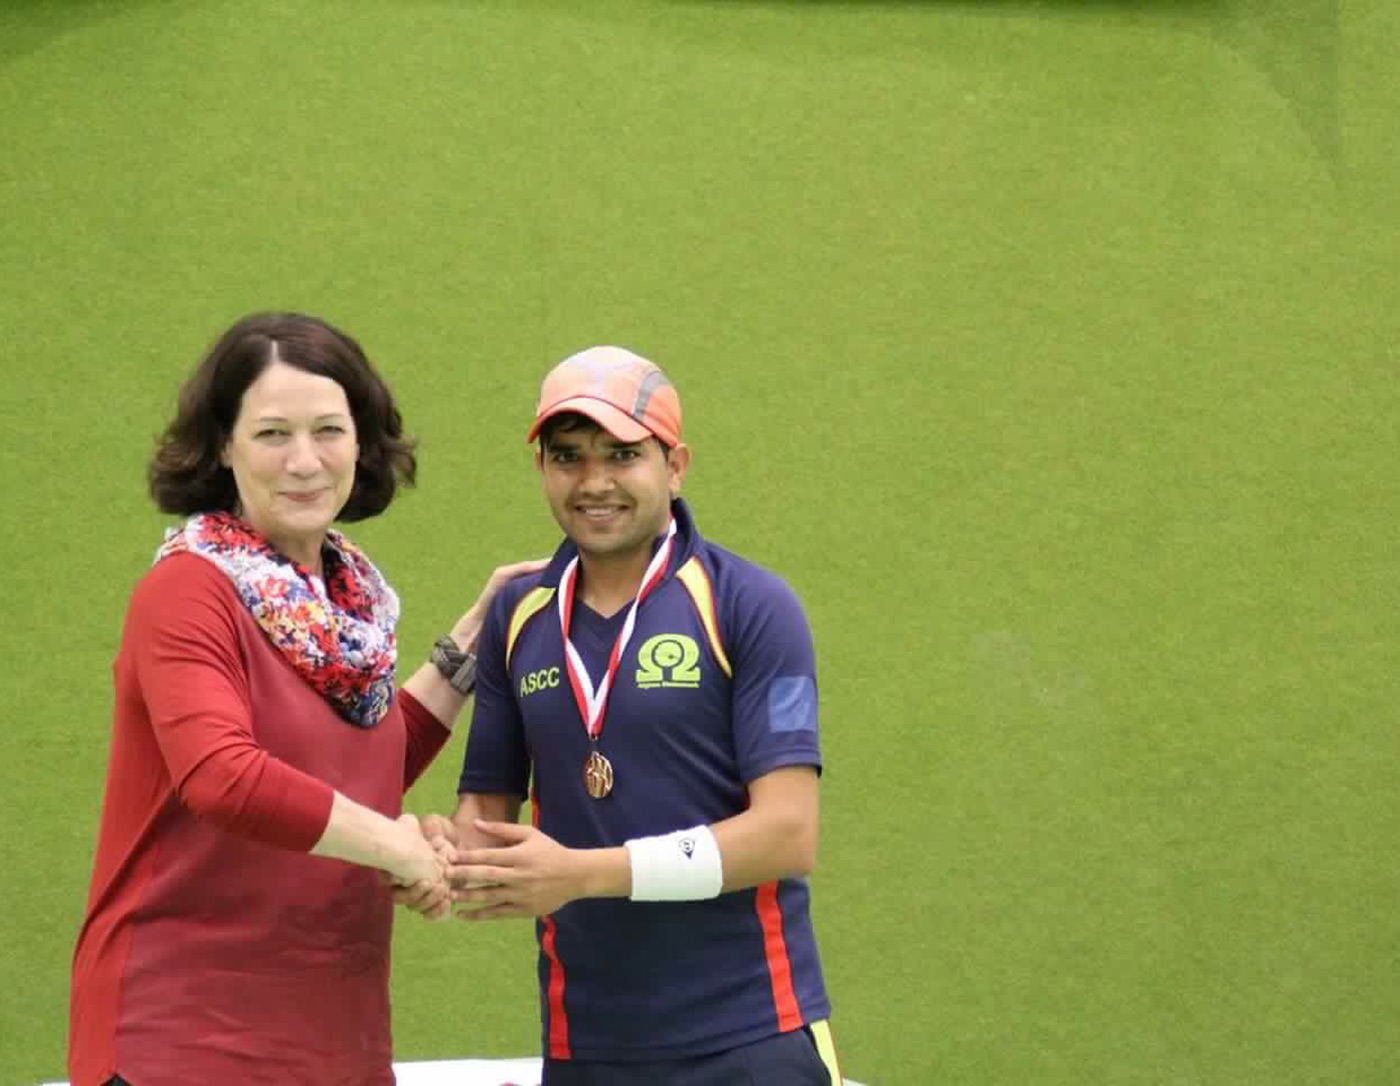 Pamir Zarawar Khan after ASCC's win in the Masala Cup indoor tournament in Graz, 2014